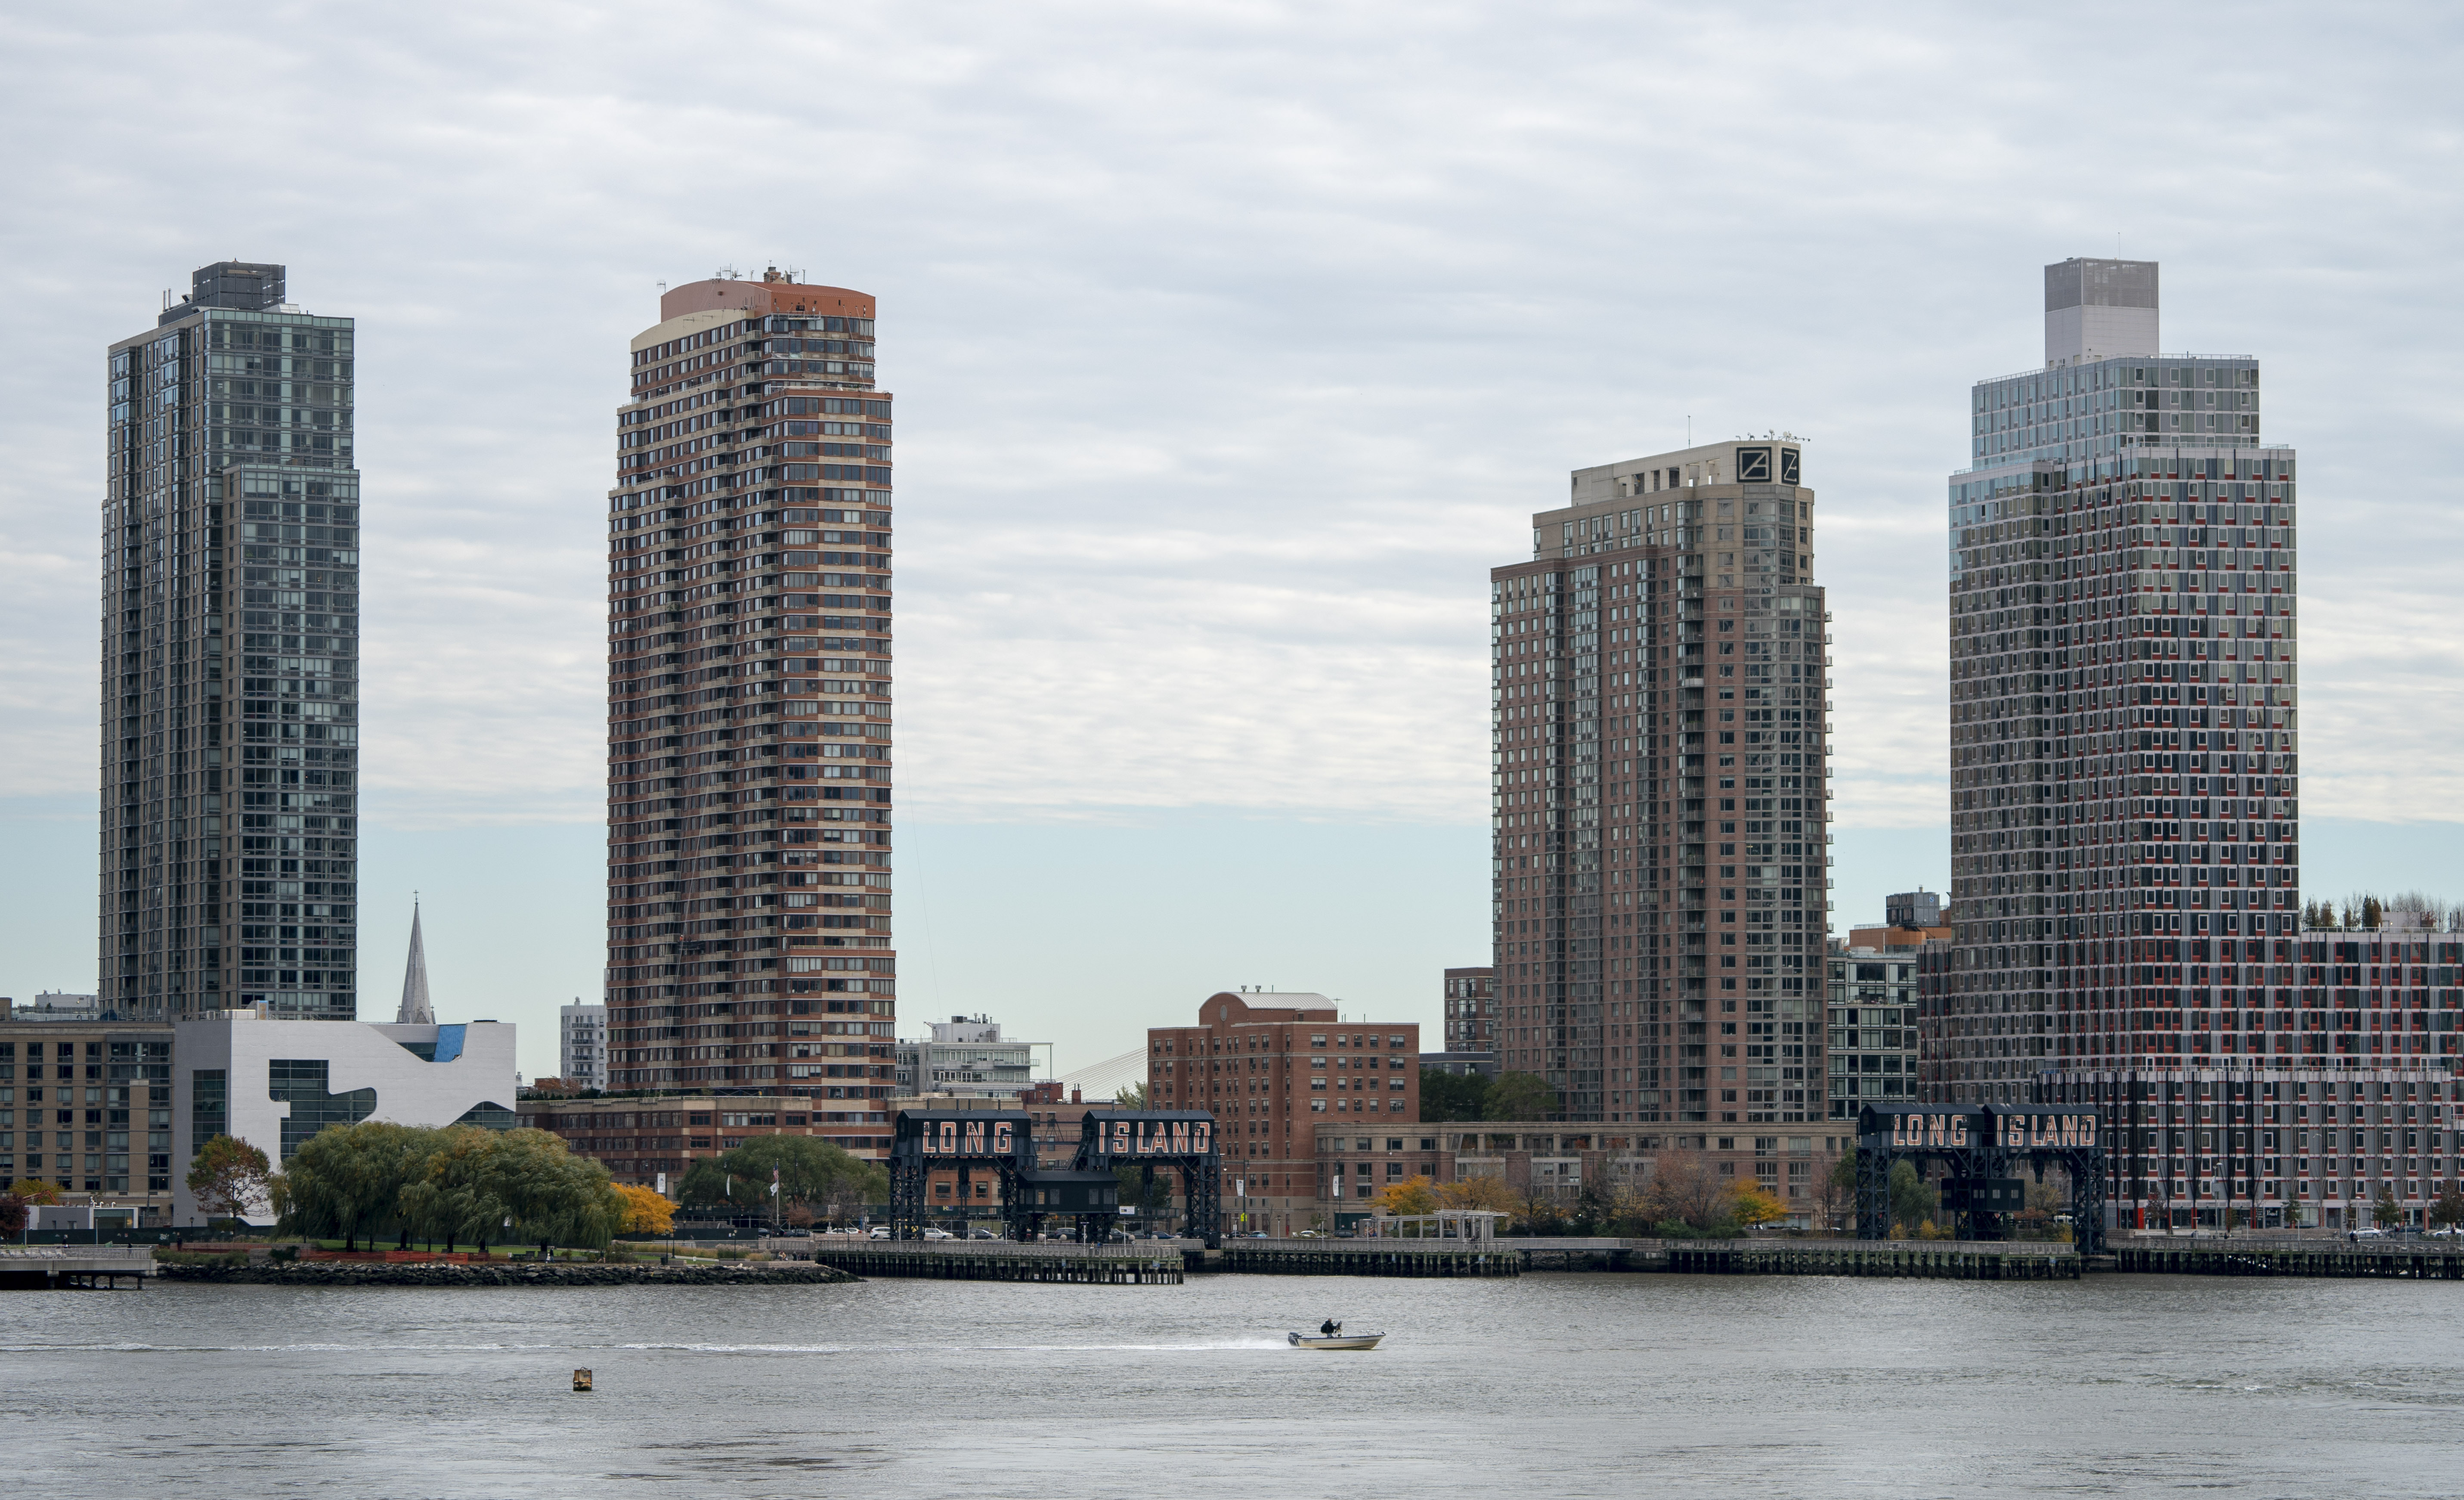 A view of Long Island City in the Queens borough of New York along the East River, taken from Manahattan, on November 7, 2018. DON EMMERT/AFP/Getty Images